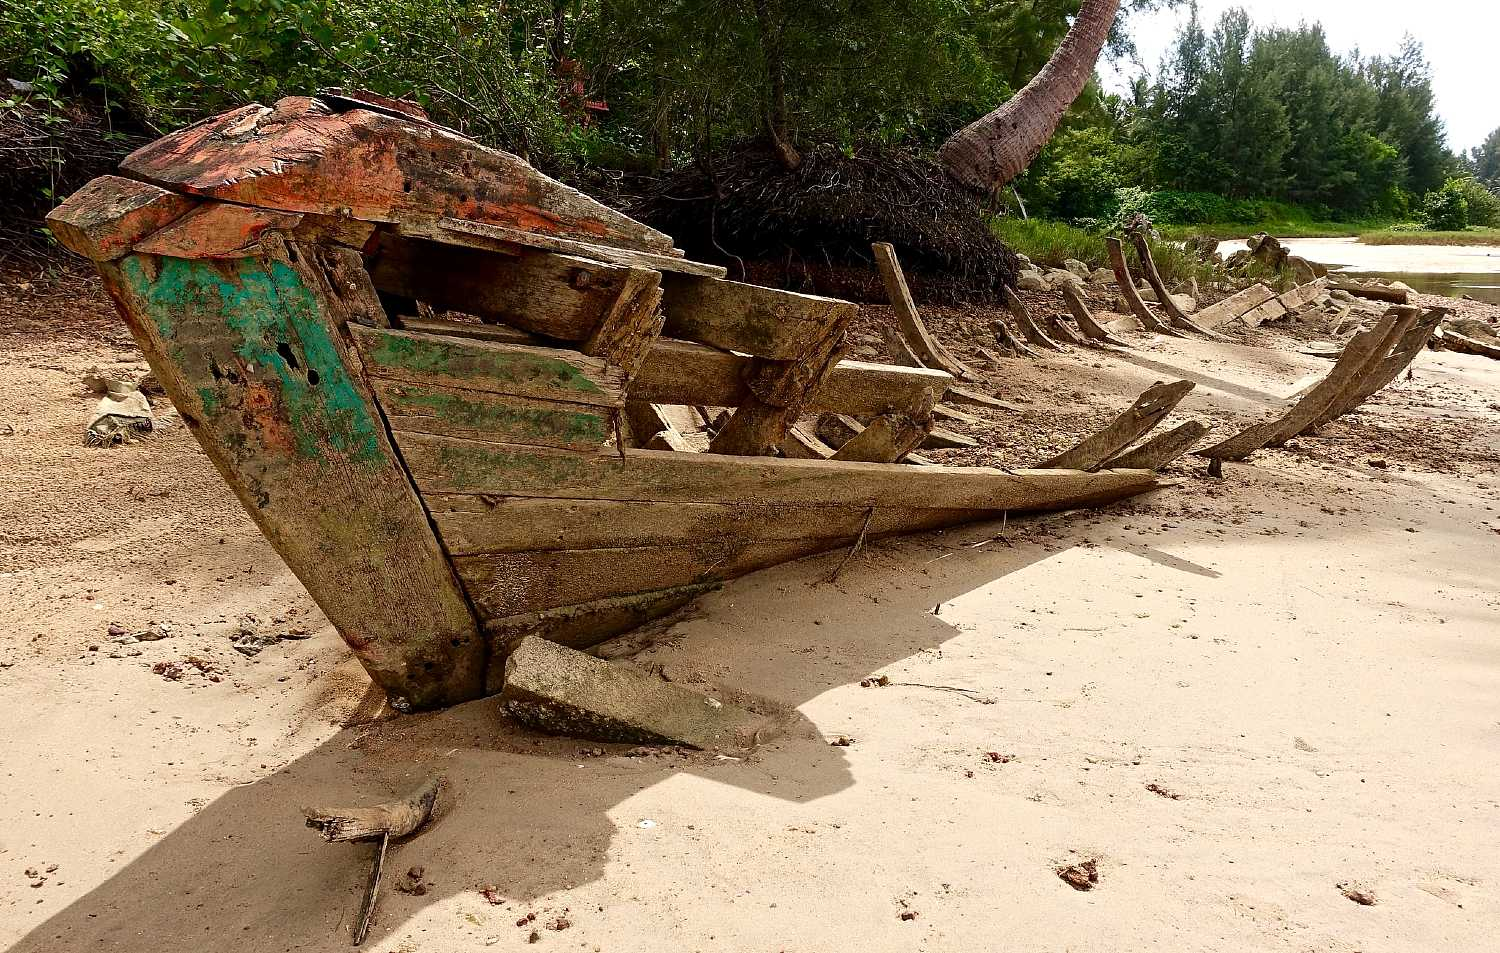 Old half decayed fishing boat on the beach